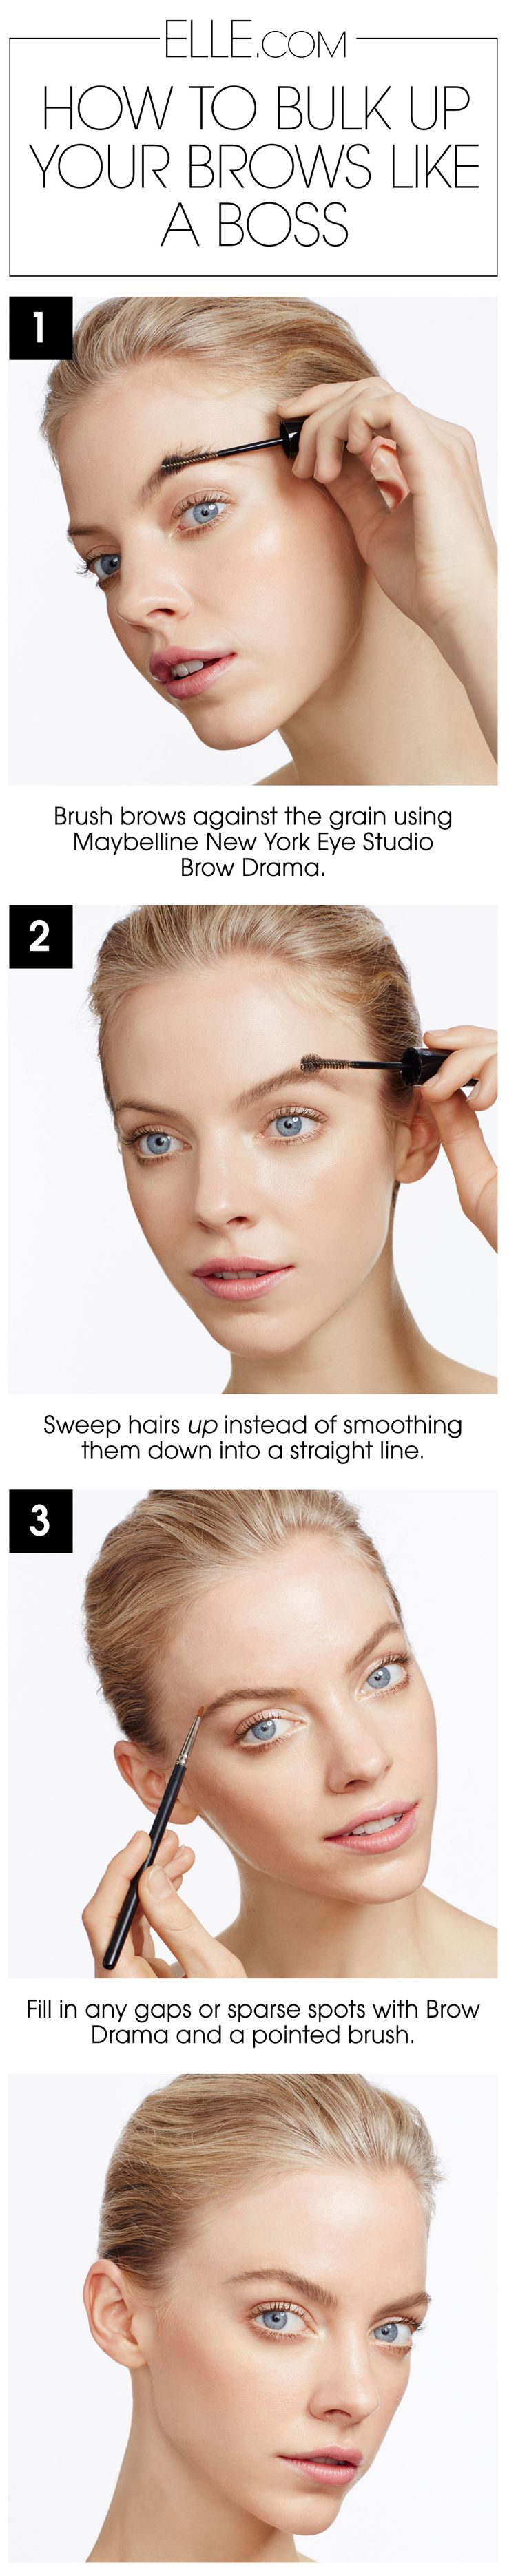 Bulk up your brows using Brow Drama Sculpting Brow Mascara in this step-by-step beauty tutorial by @Elle.